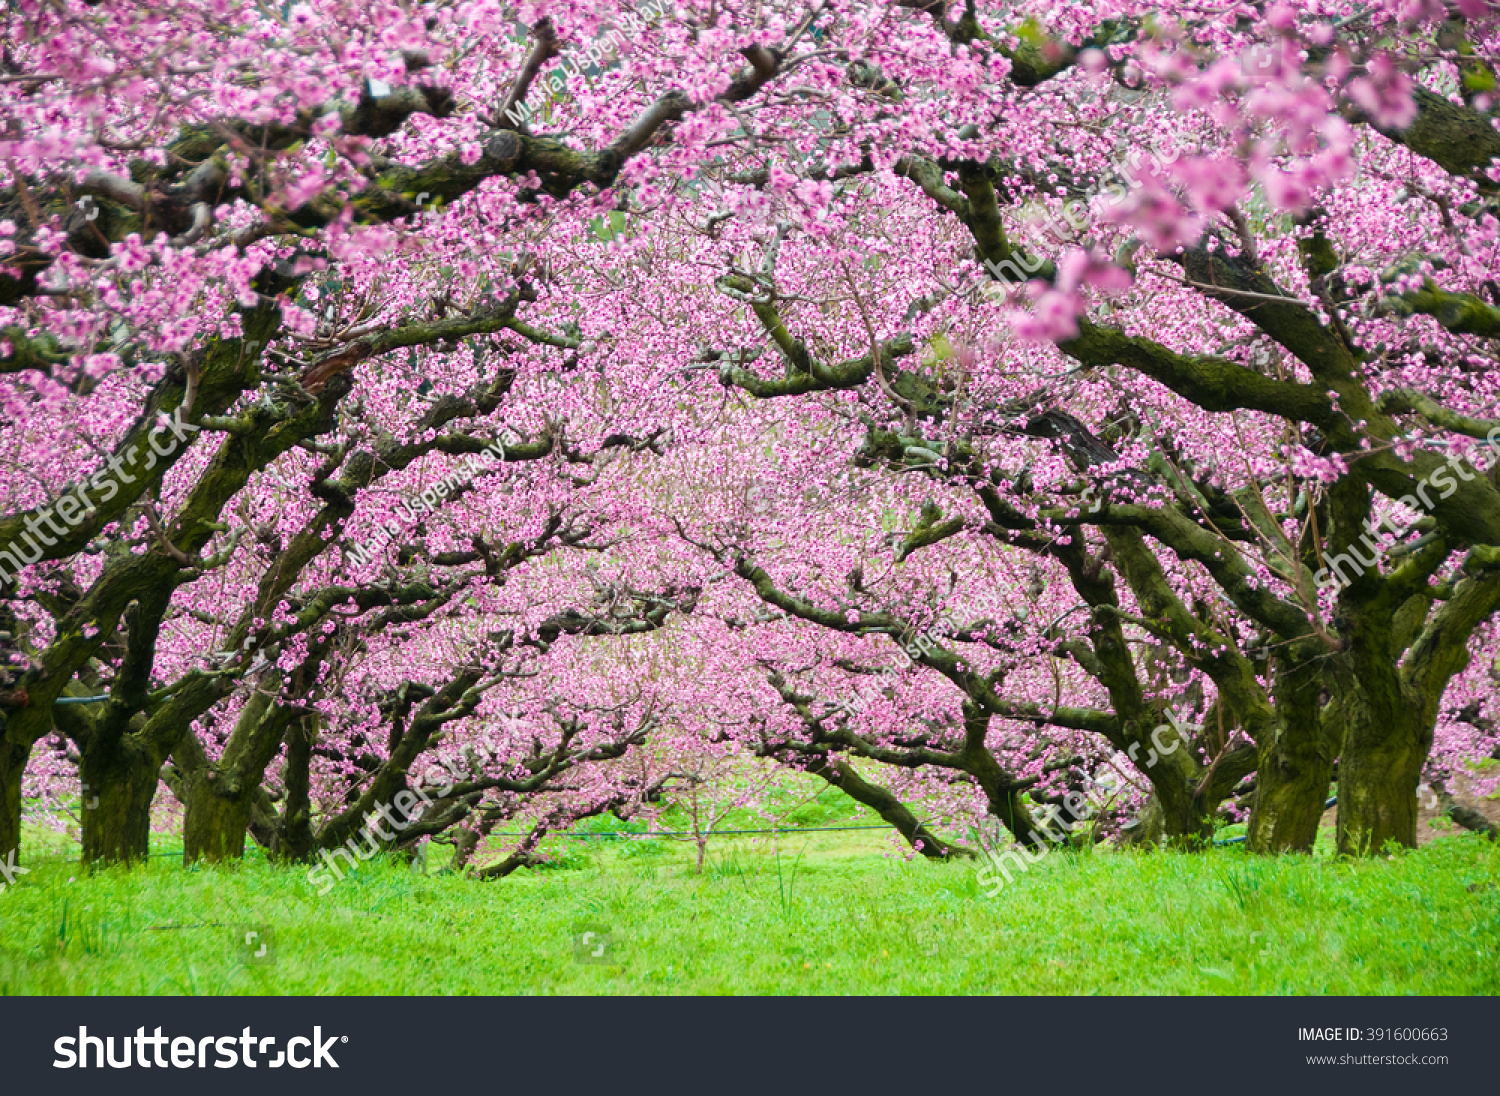 Pink Flowers Trees Tunnel Stock Photo Edit Now 391600663